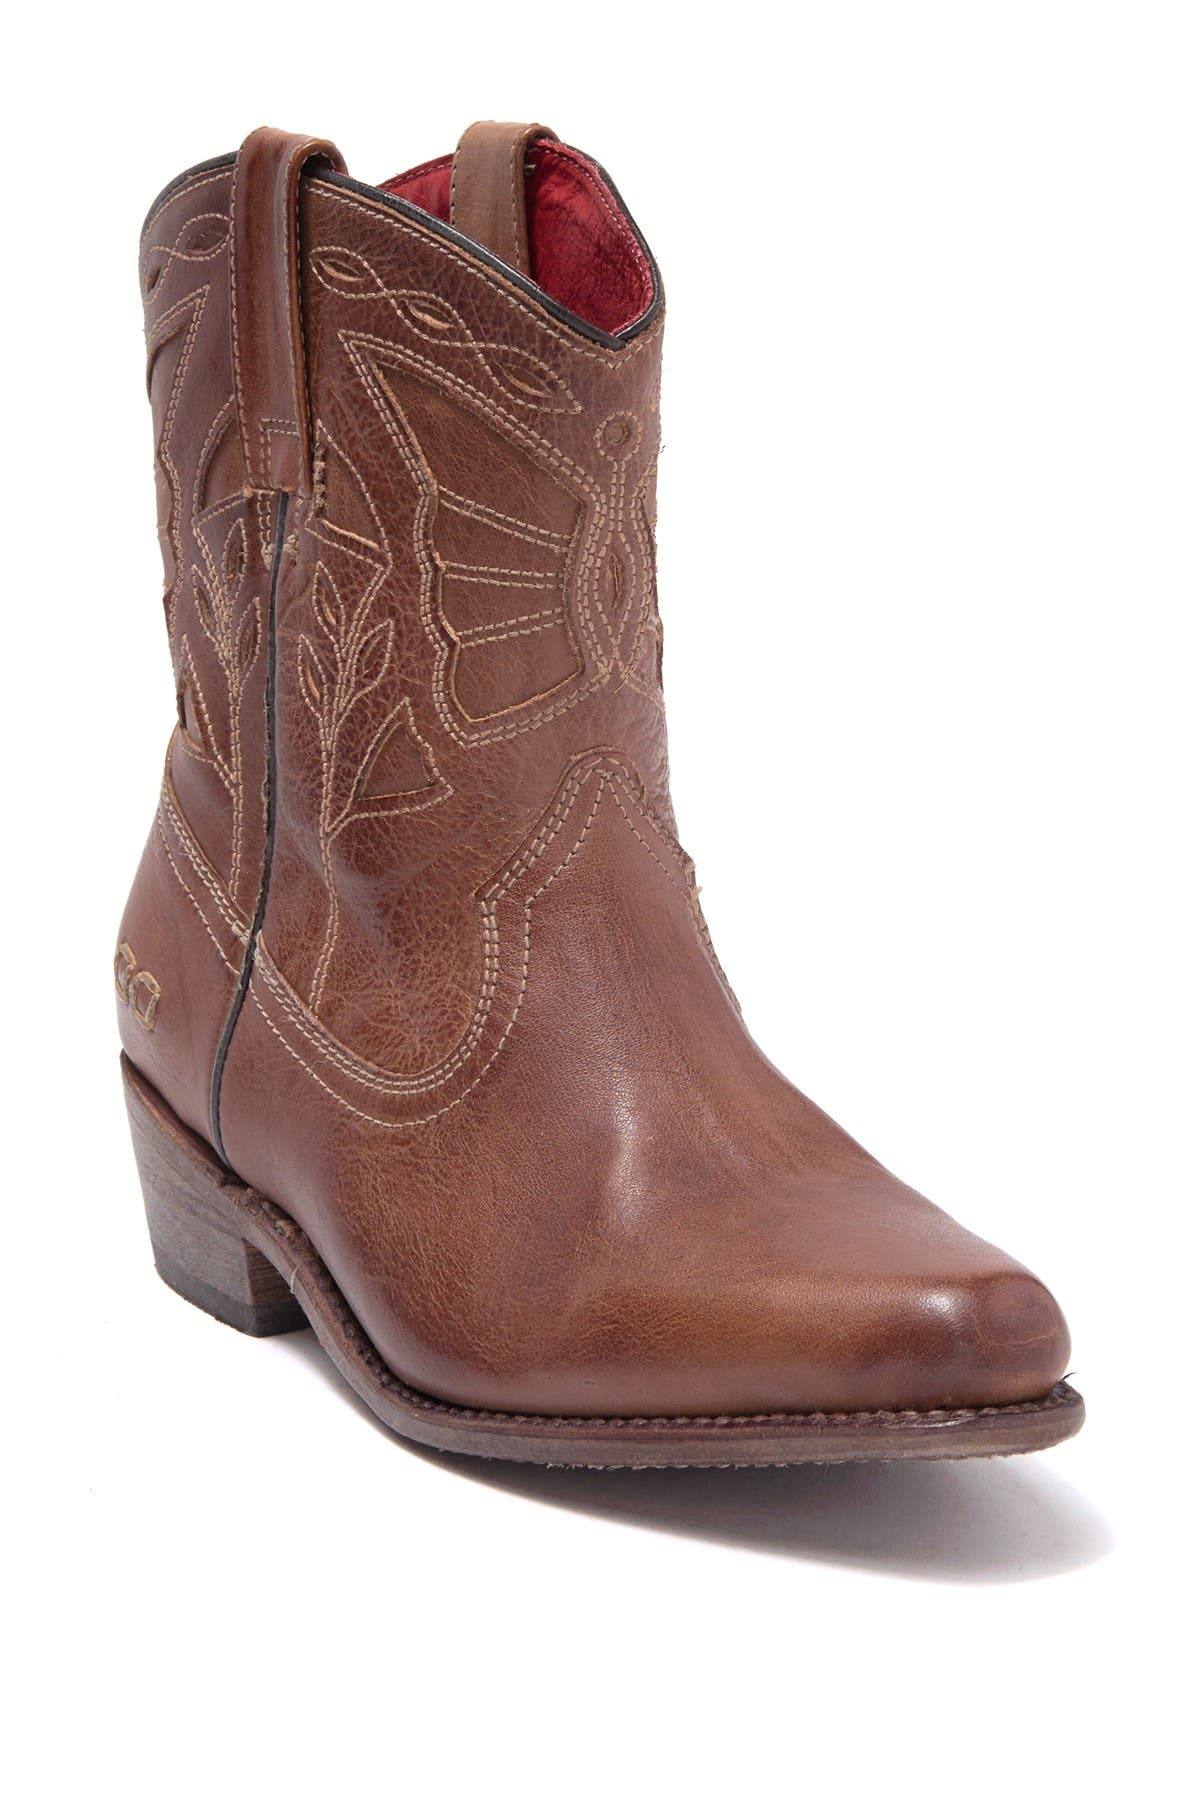 Image of Bed|Stu Filly II Butterfly Western Leather Boot